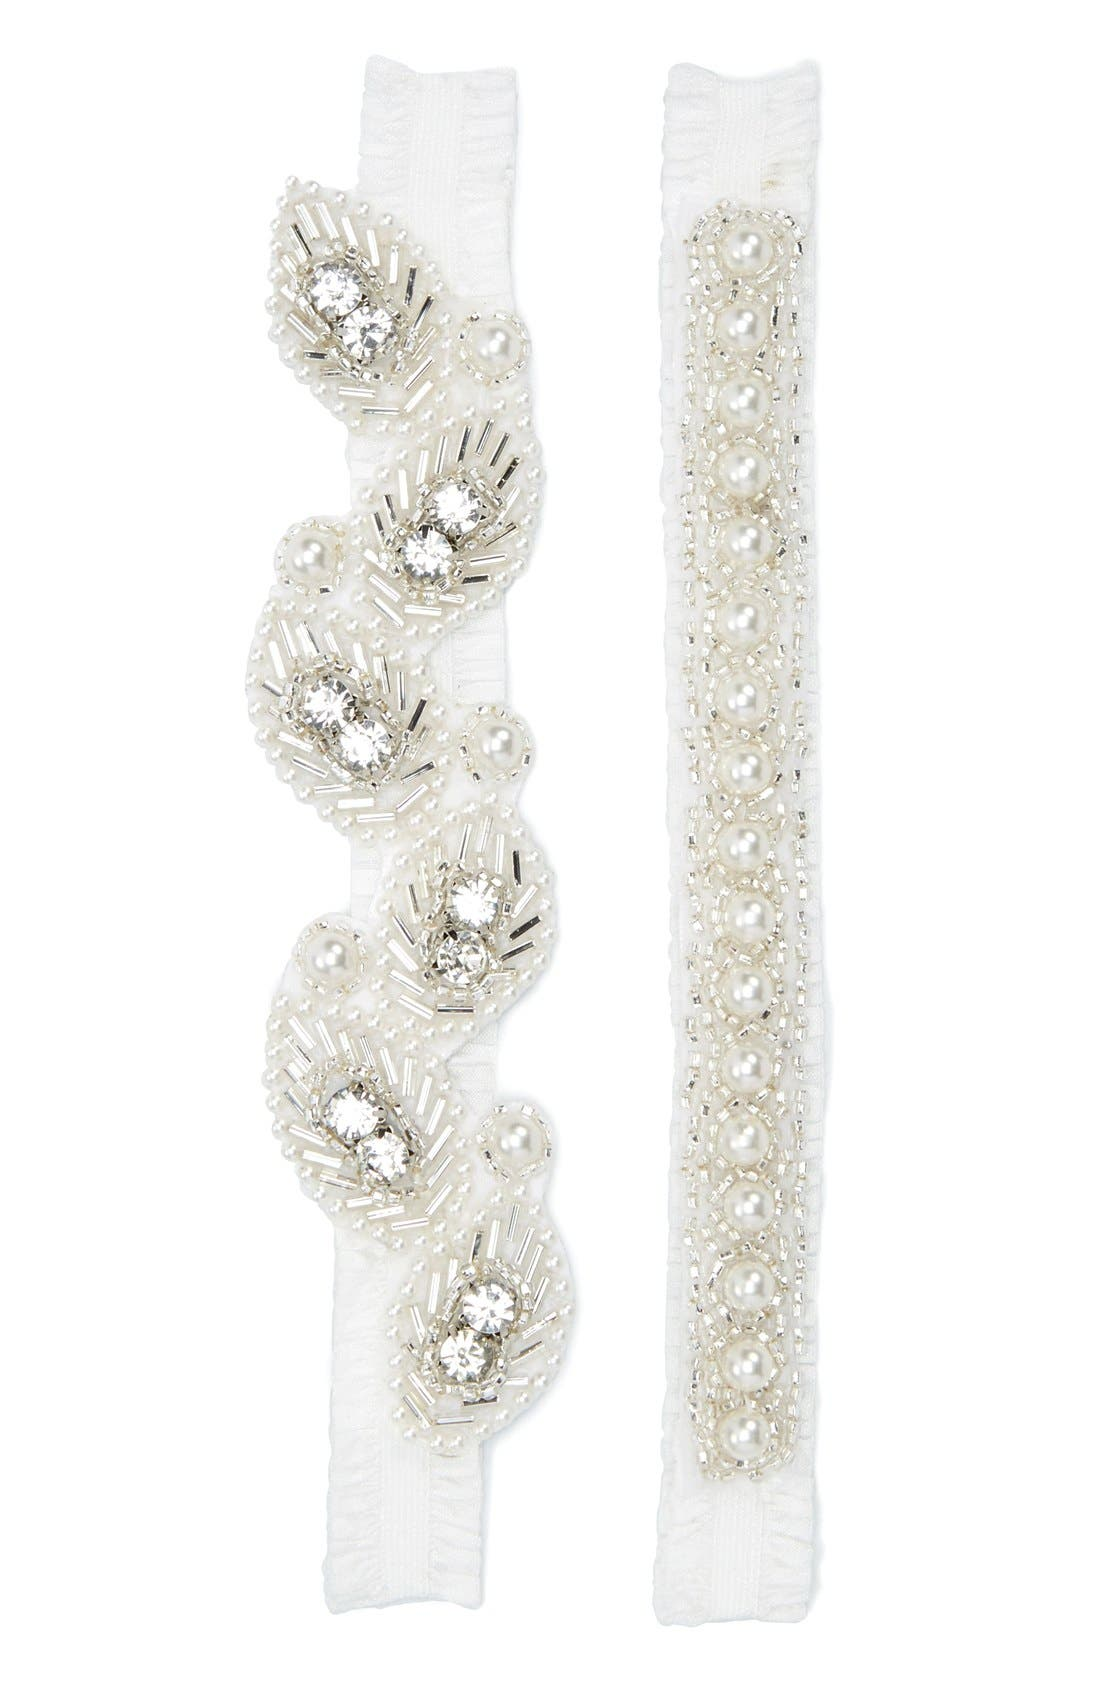 NESTINA ACCESSORIES 'Ashley' Bridal Garters